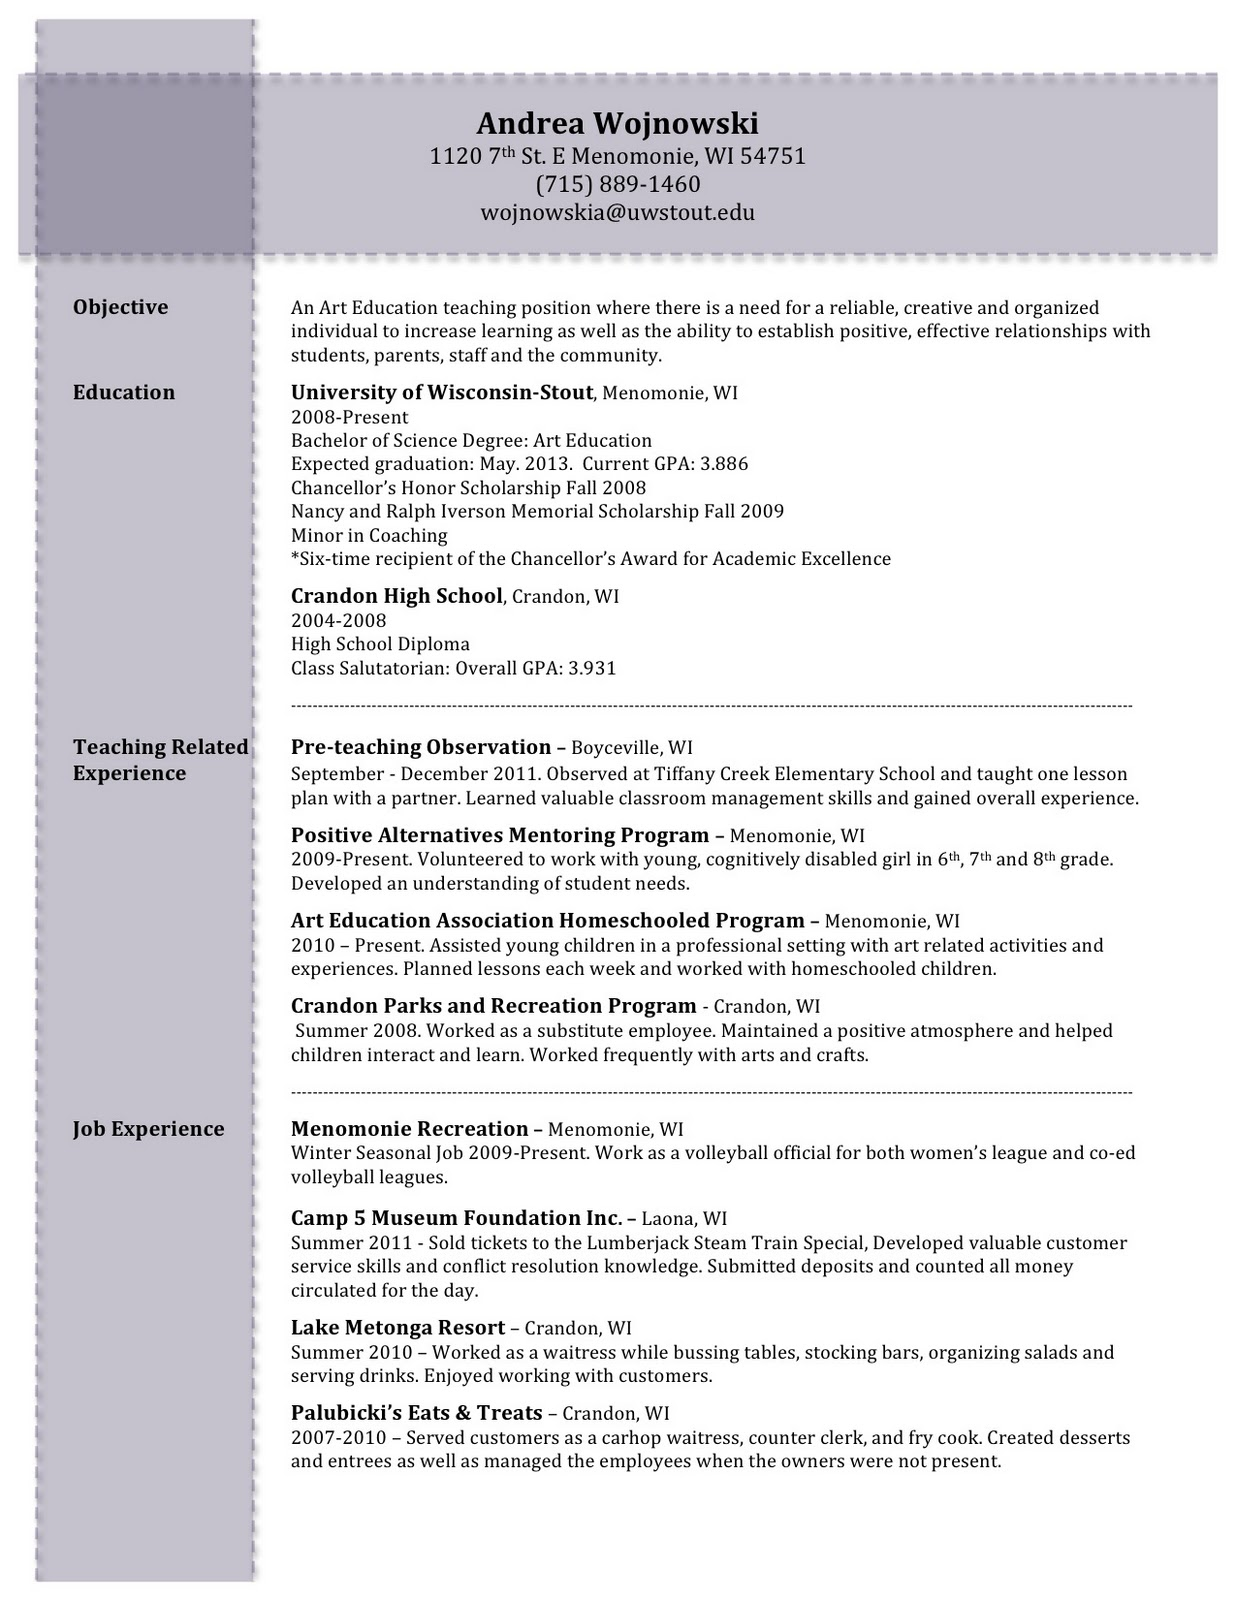 what to write for skills on resume art education field experience resume writing what to write for skills on resume 3139